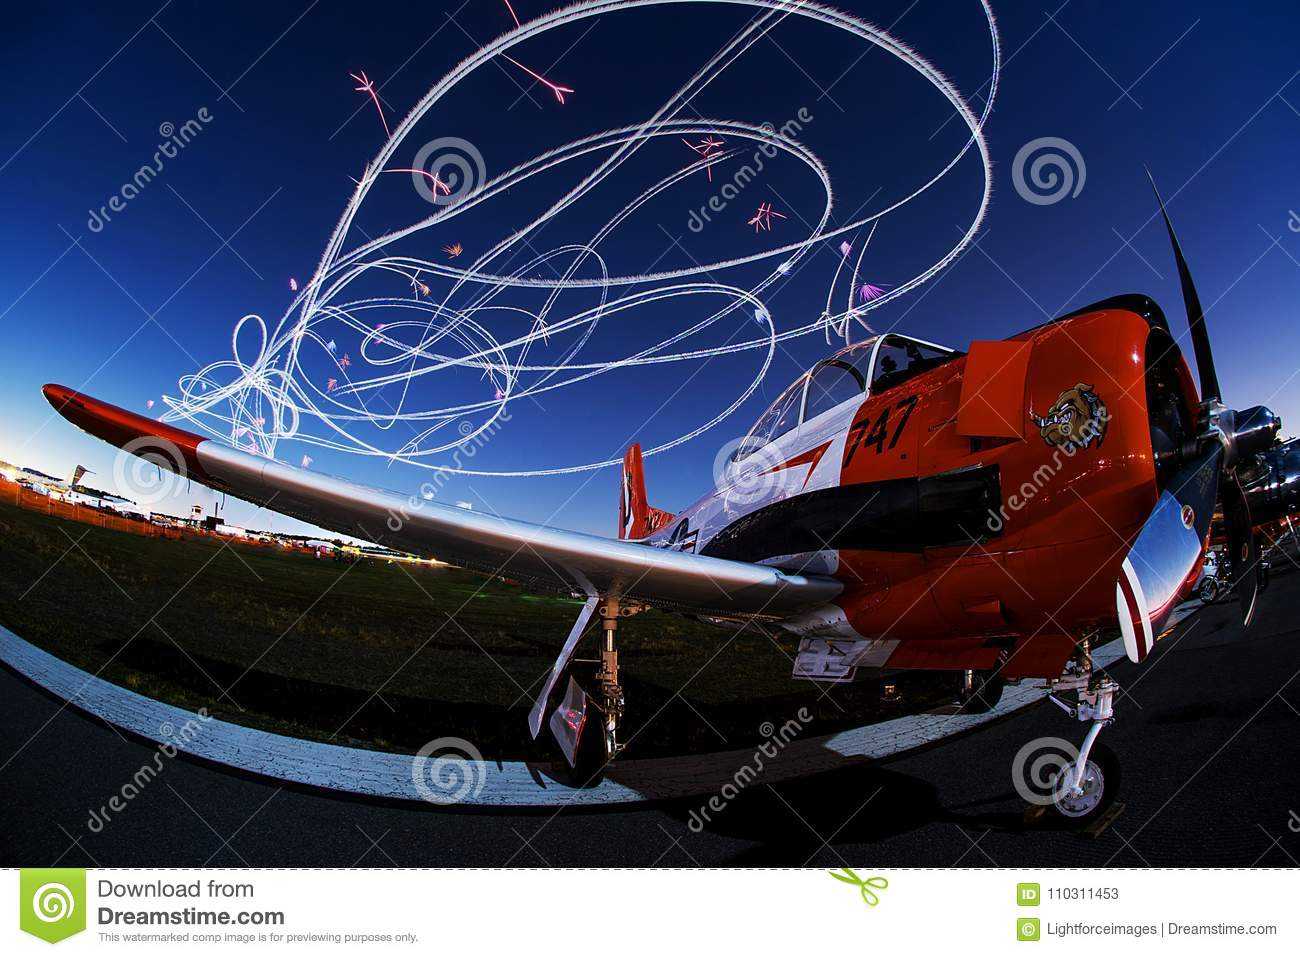 Aviation Art in the Night Sky!